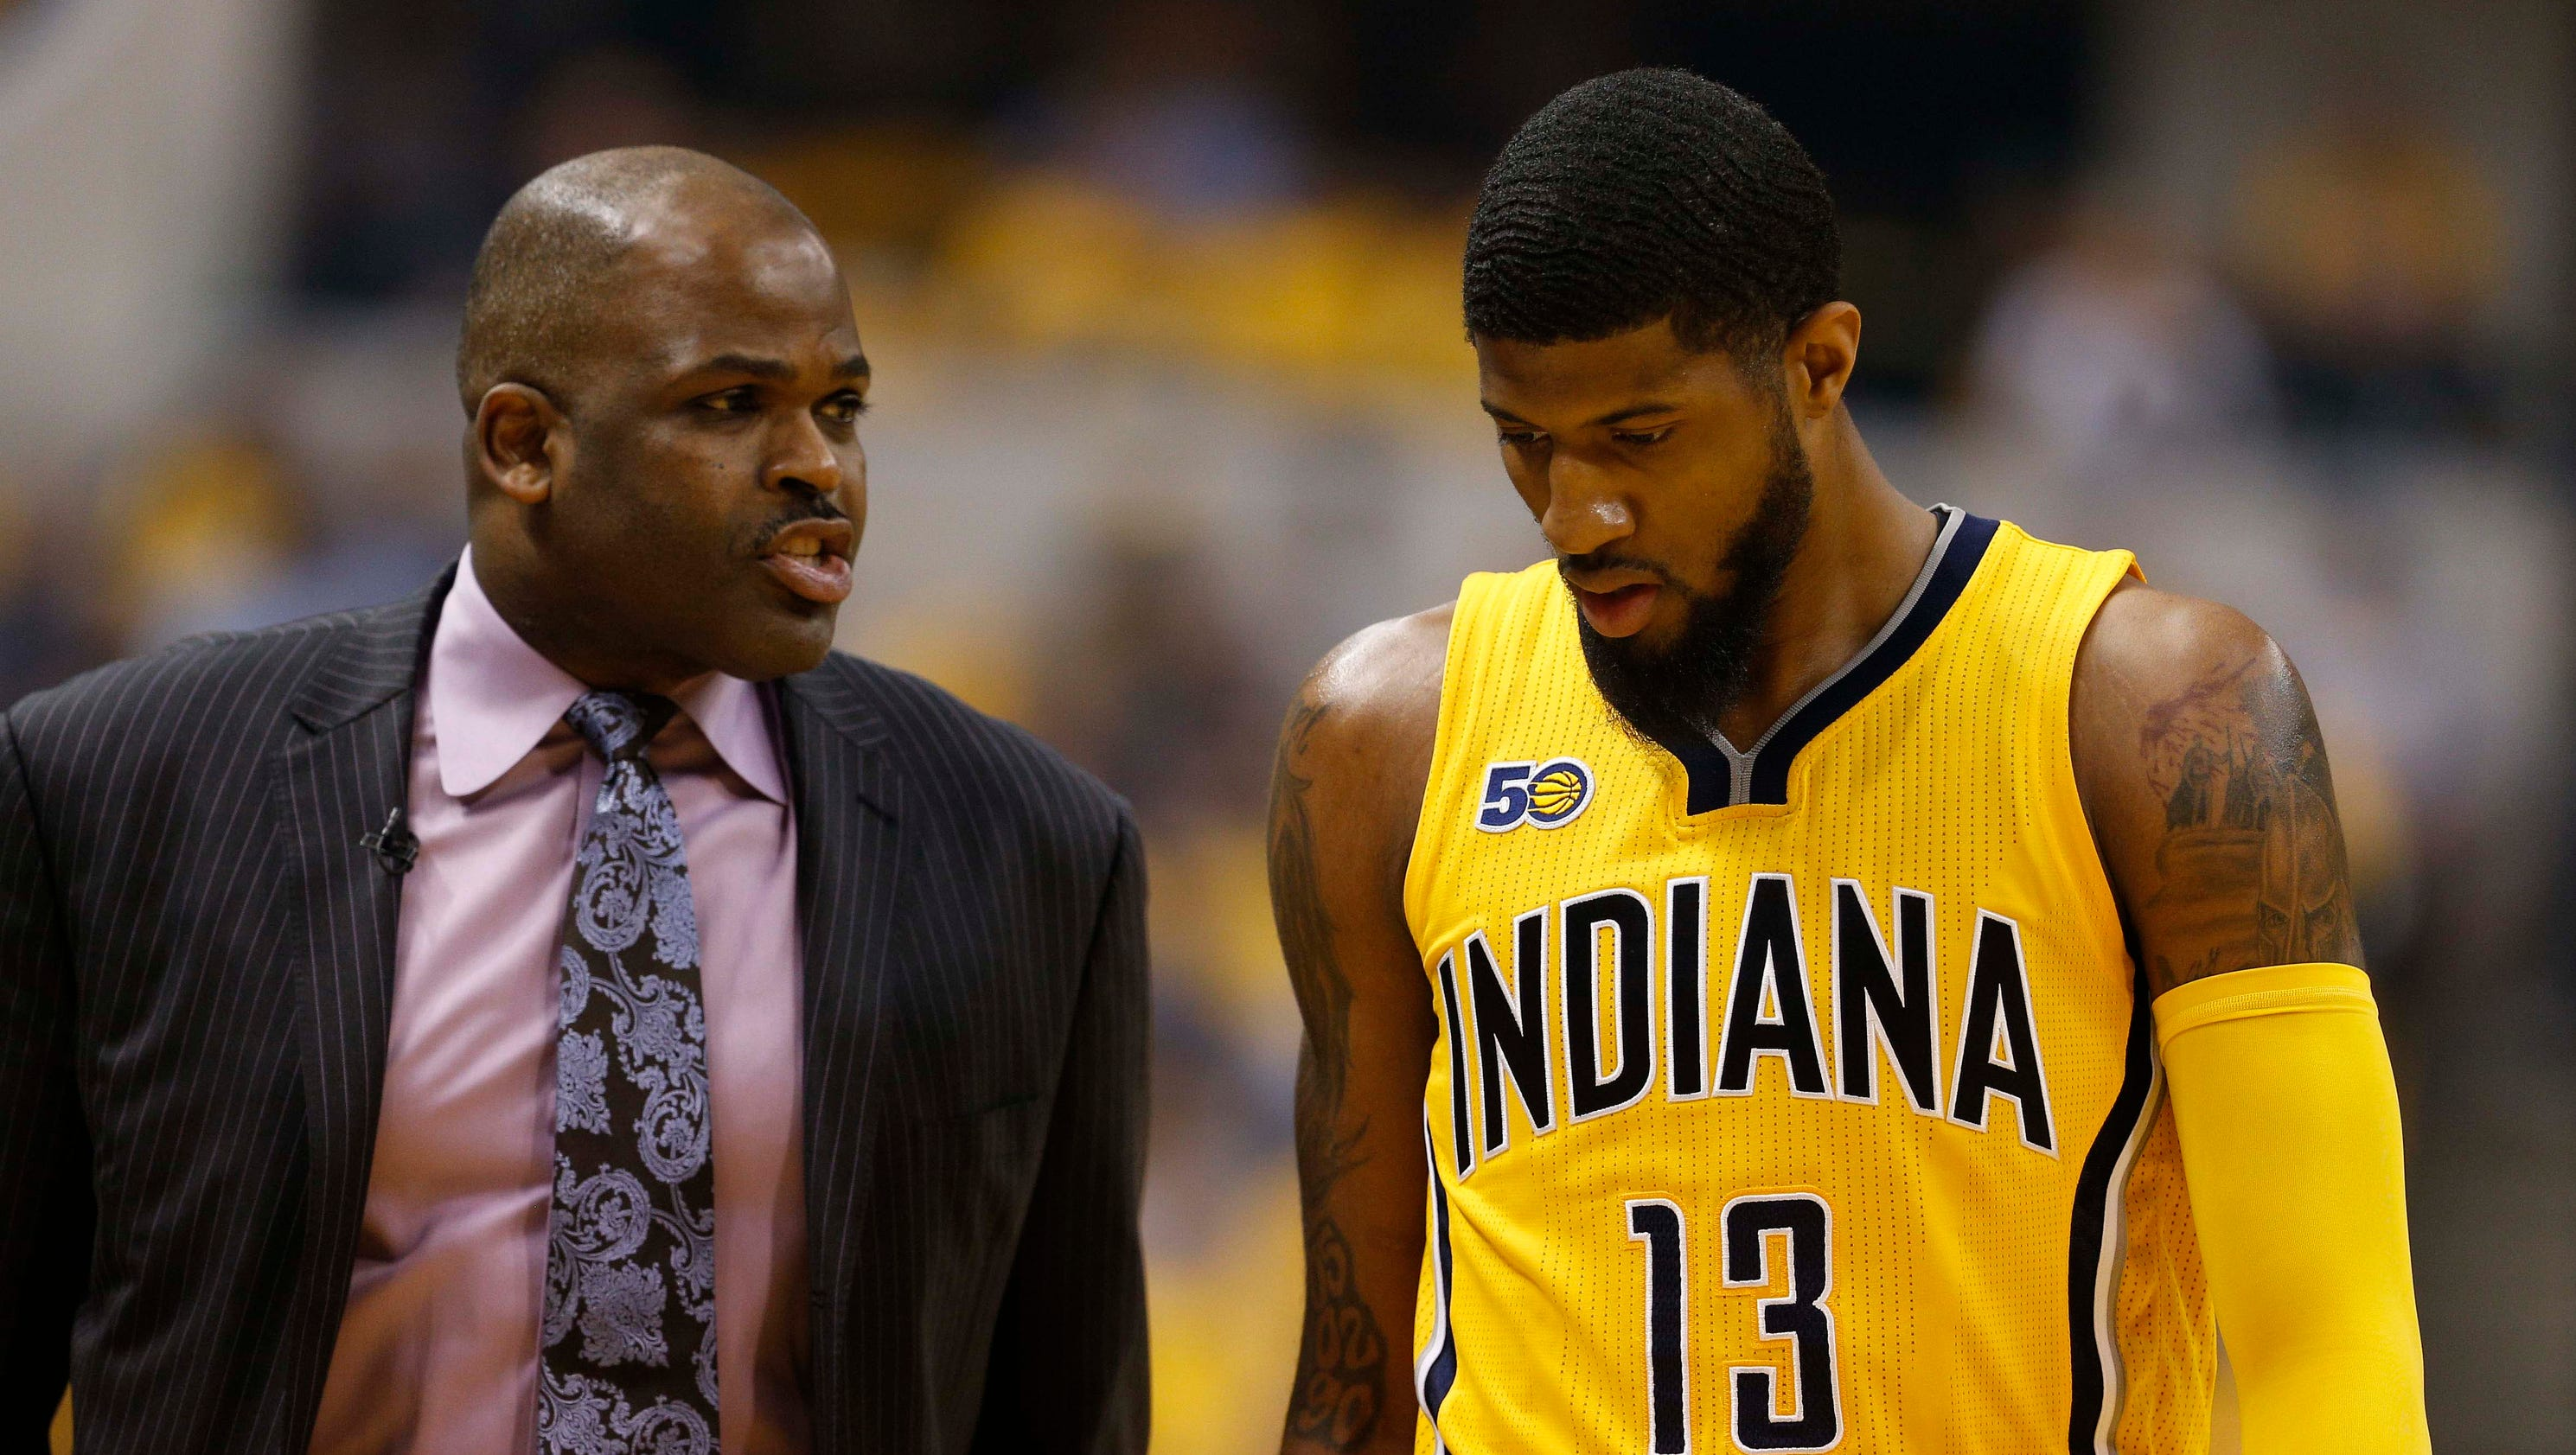 Pacers coach Nate McMillan warns of losing fans respect before Game 4